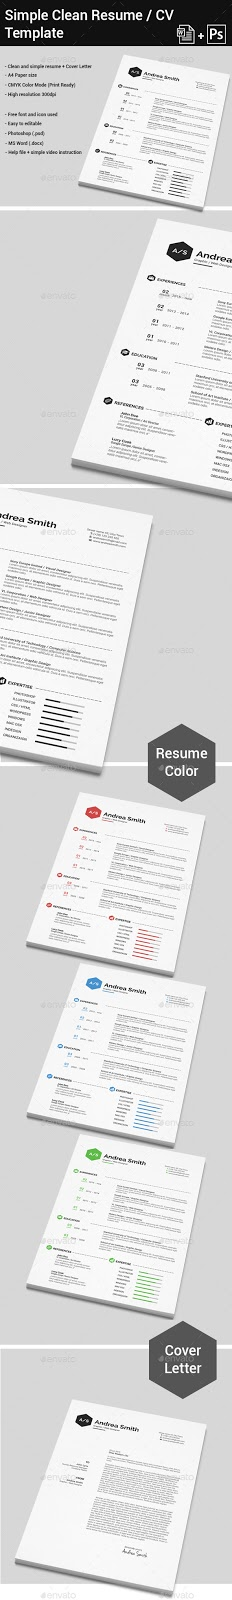 new graphic template logo designs simple clean resume cover letter